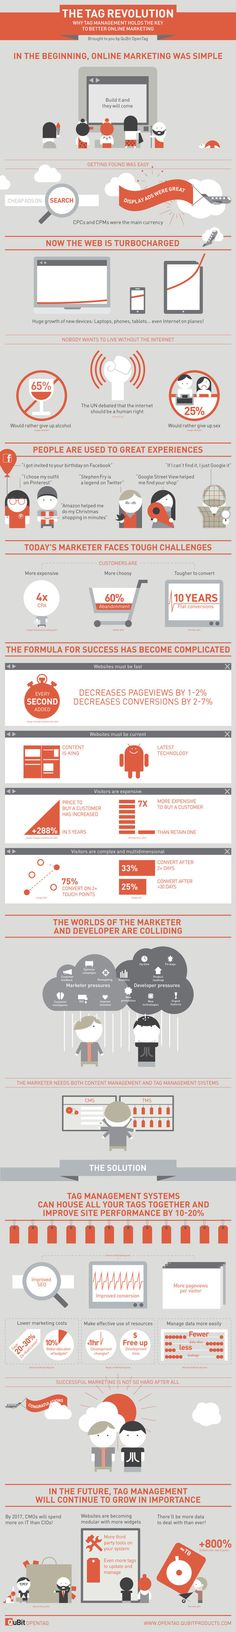 The tag revolution: infographic  Super love this one :)